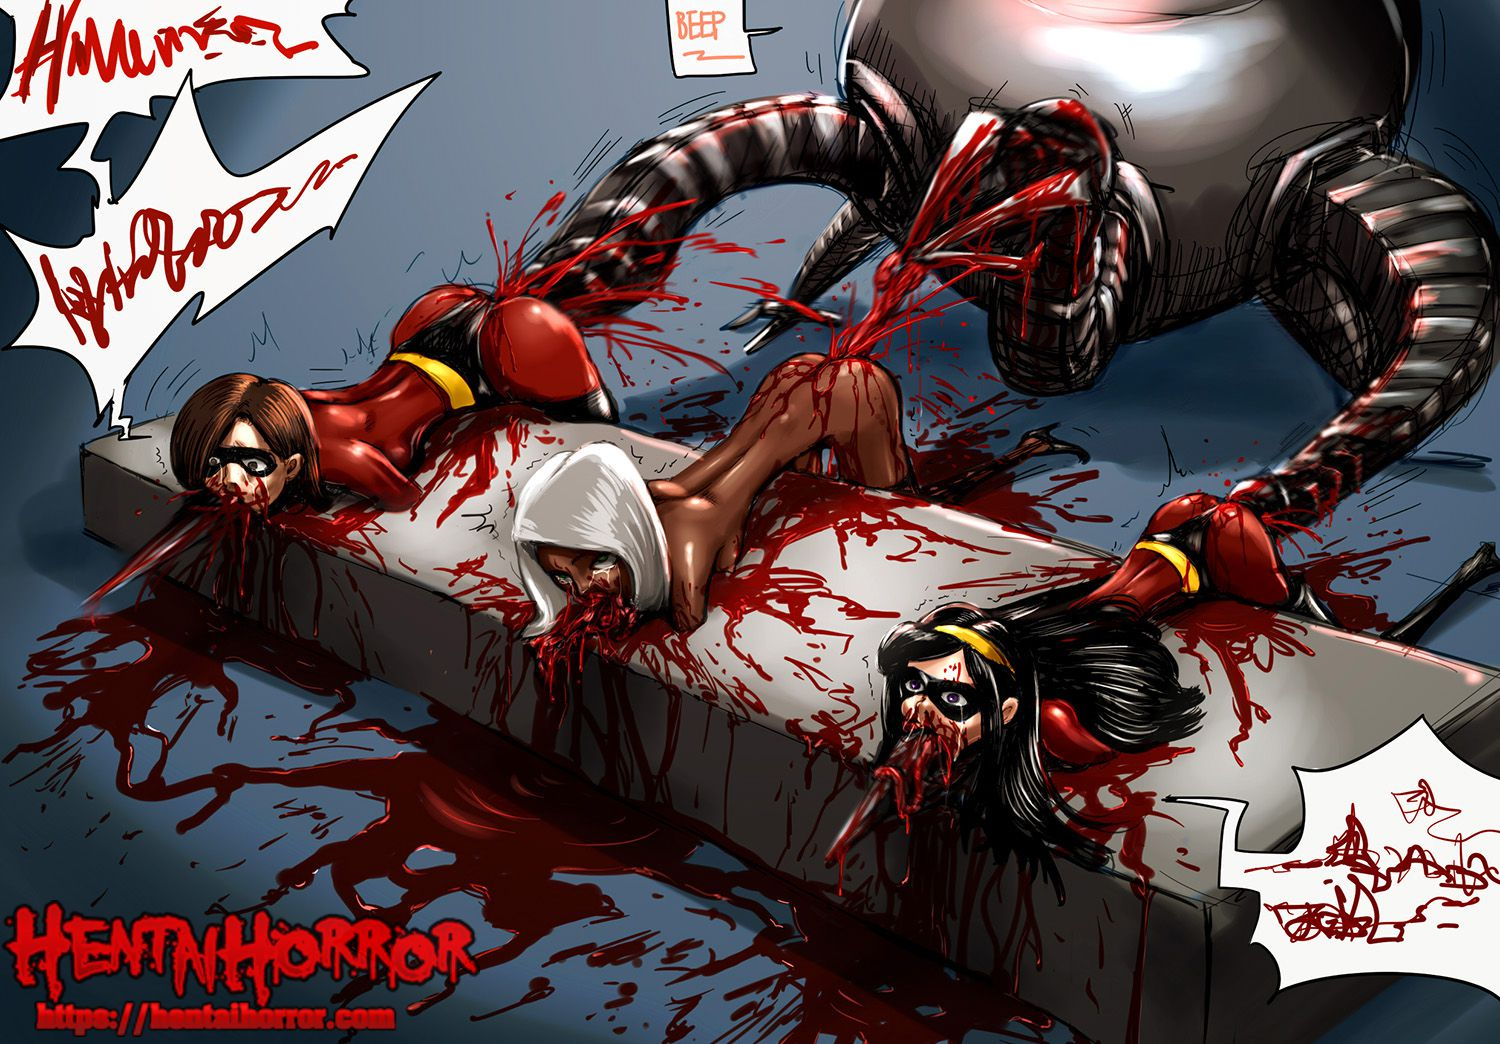 NSFW uncensored gore hentai cartoon porn art of Helen Parr, Violet Parr and Mirage raped to death by Omnidroid.